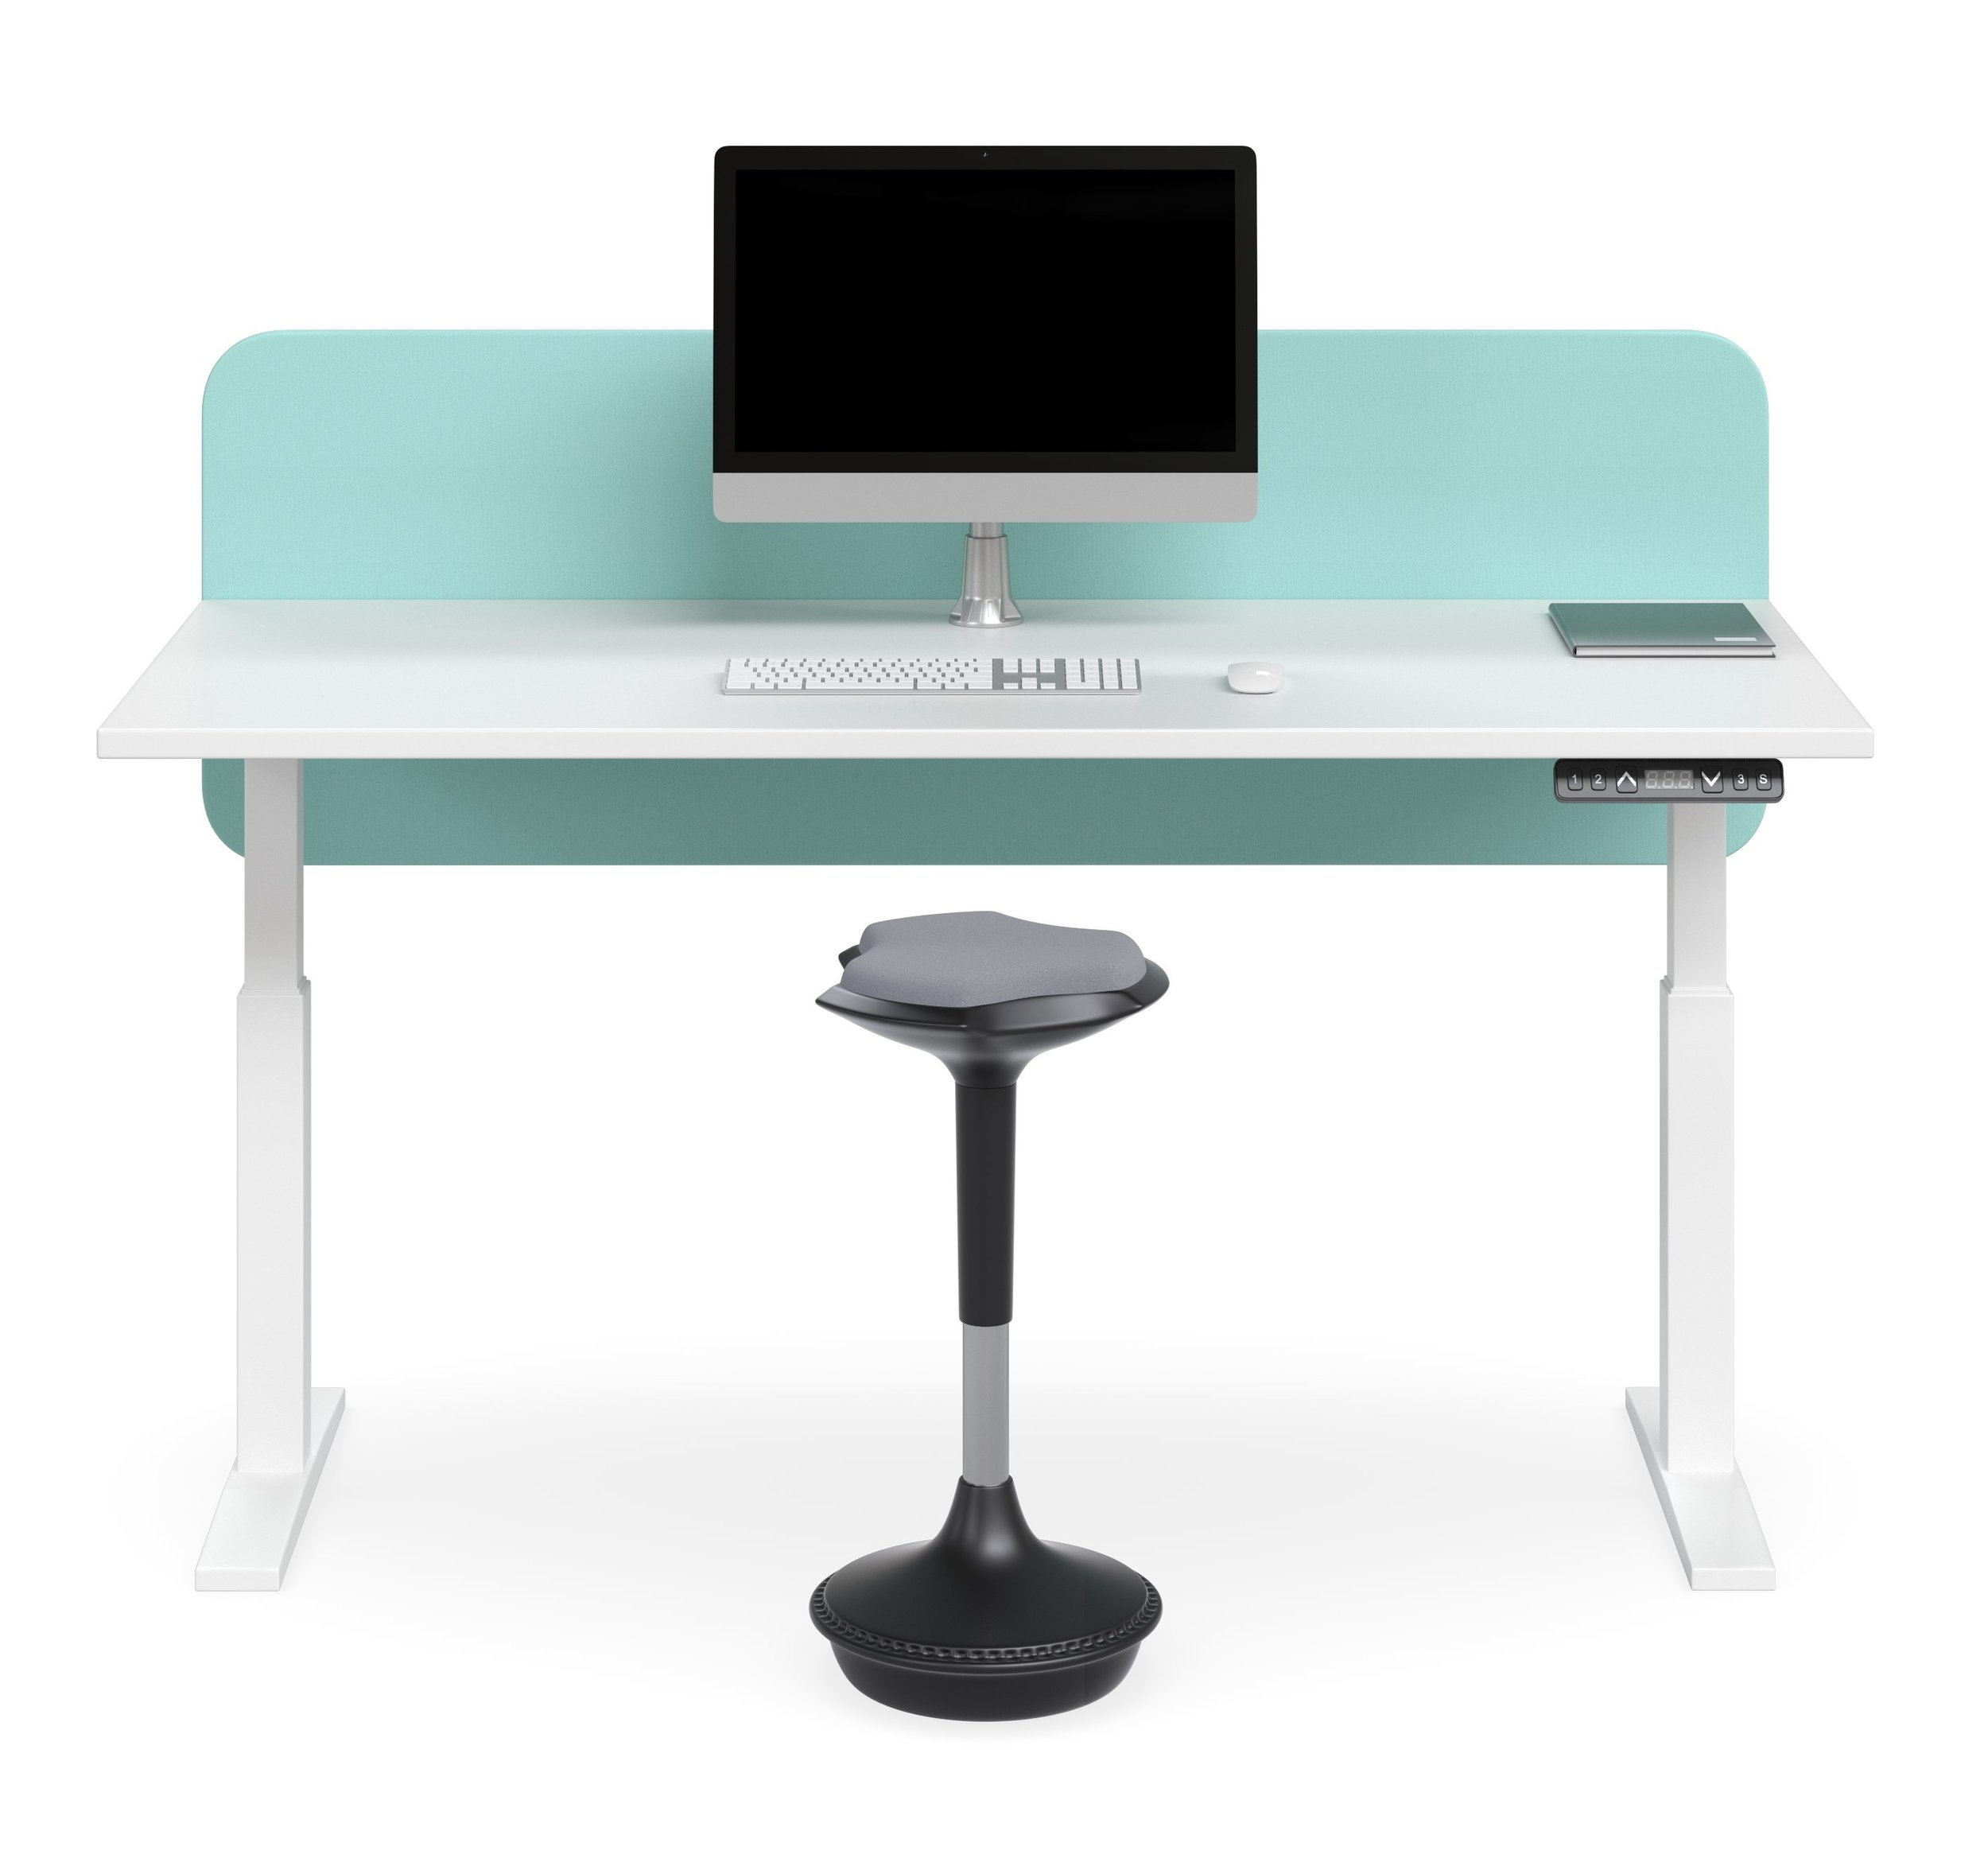 Swish_Desk_Ctr_01.jpg